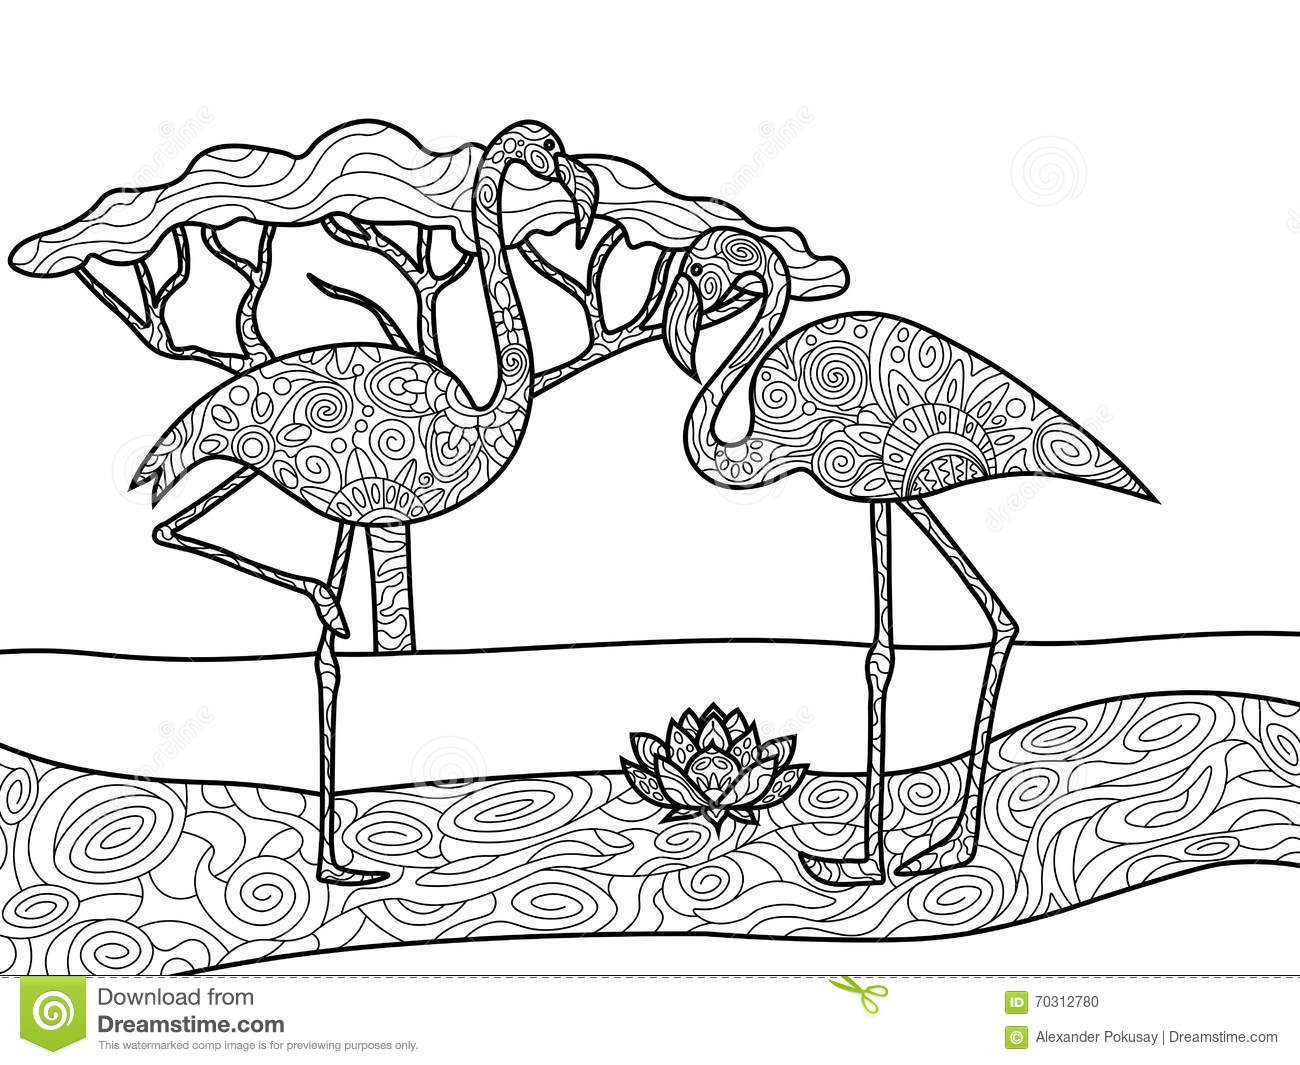 Coloring sheets for adults flamingo - Flamingo Coloring Pages For Adults